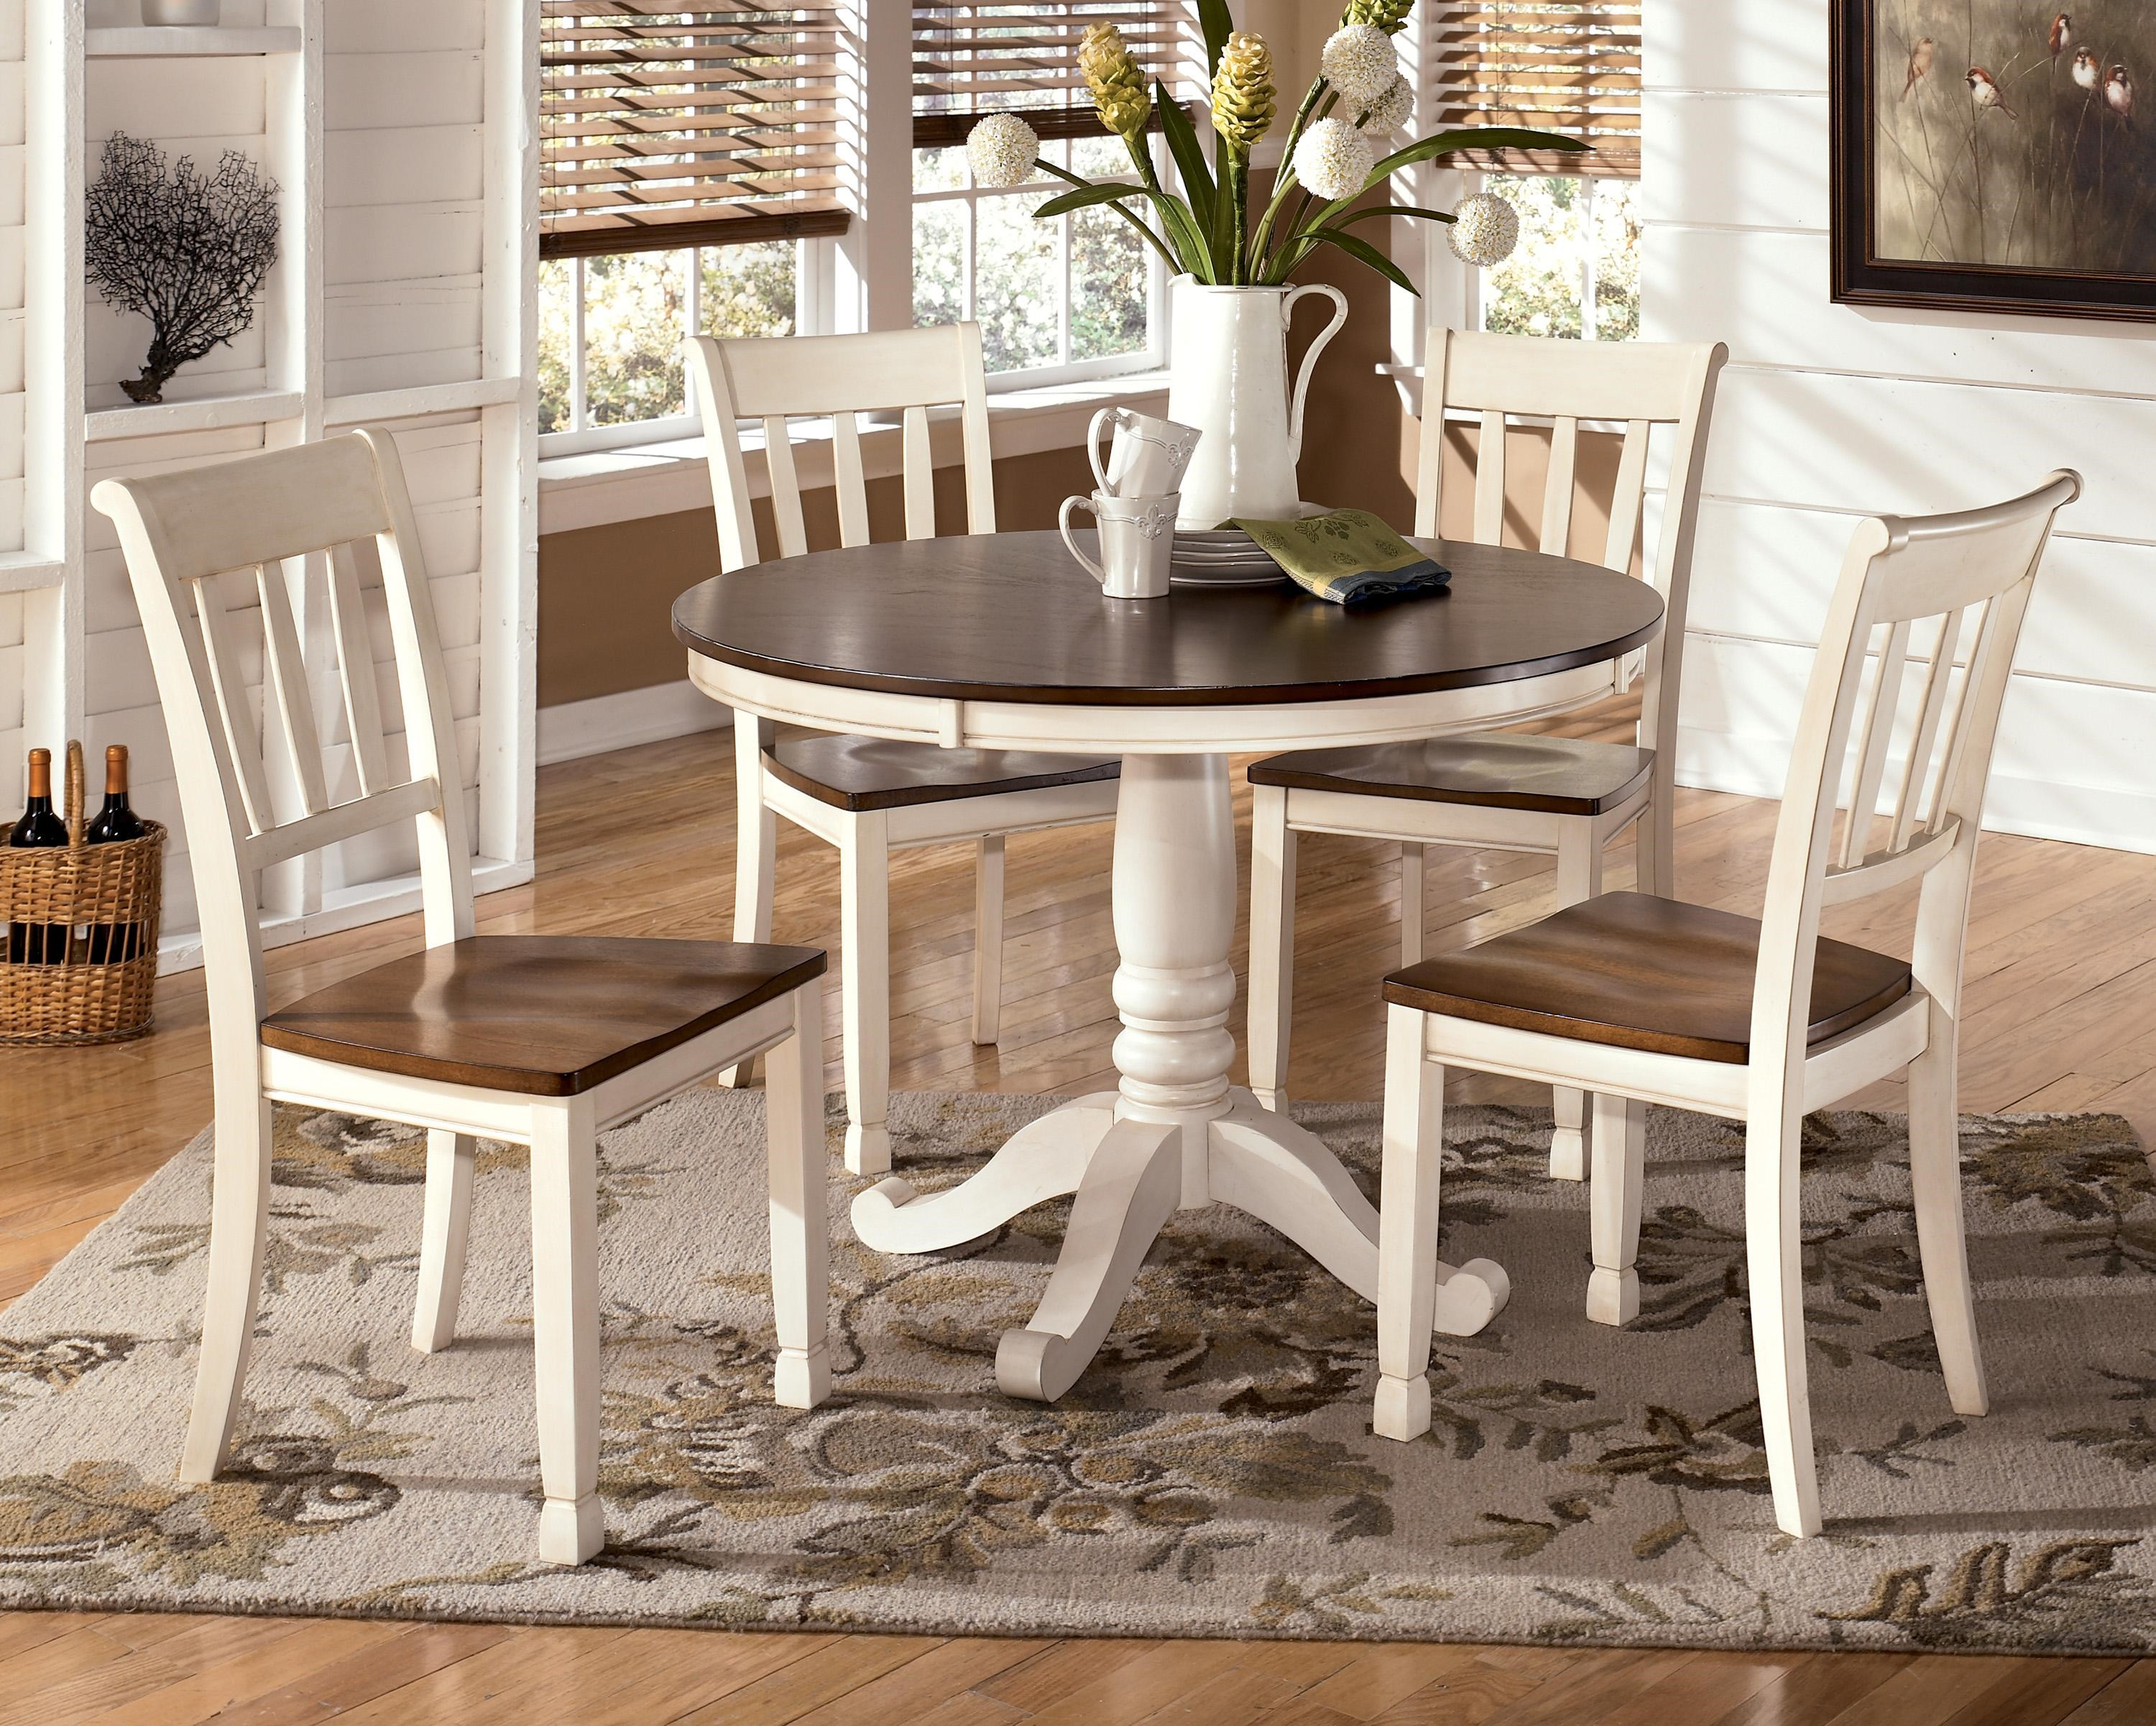 Signature Design by Ashley Whitesburg 5-Piece Two-Tone Cottage Round Table Set  sc 1 st  Michaelu0027s Furniture Warehouse & Signature Design by Ashley Whitesburg 5-Piece Two-Tone Cottage Round ...